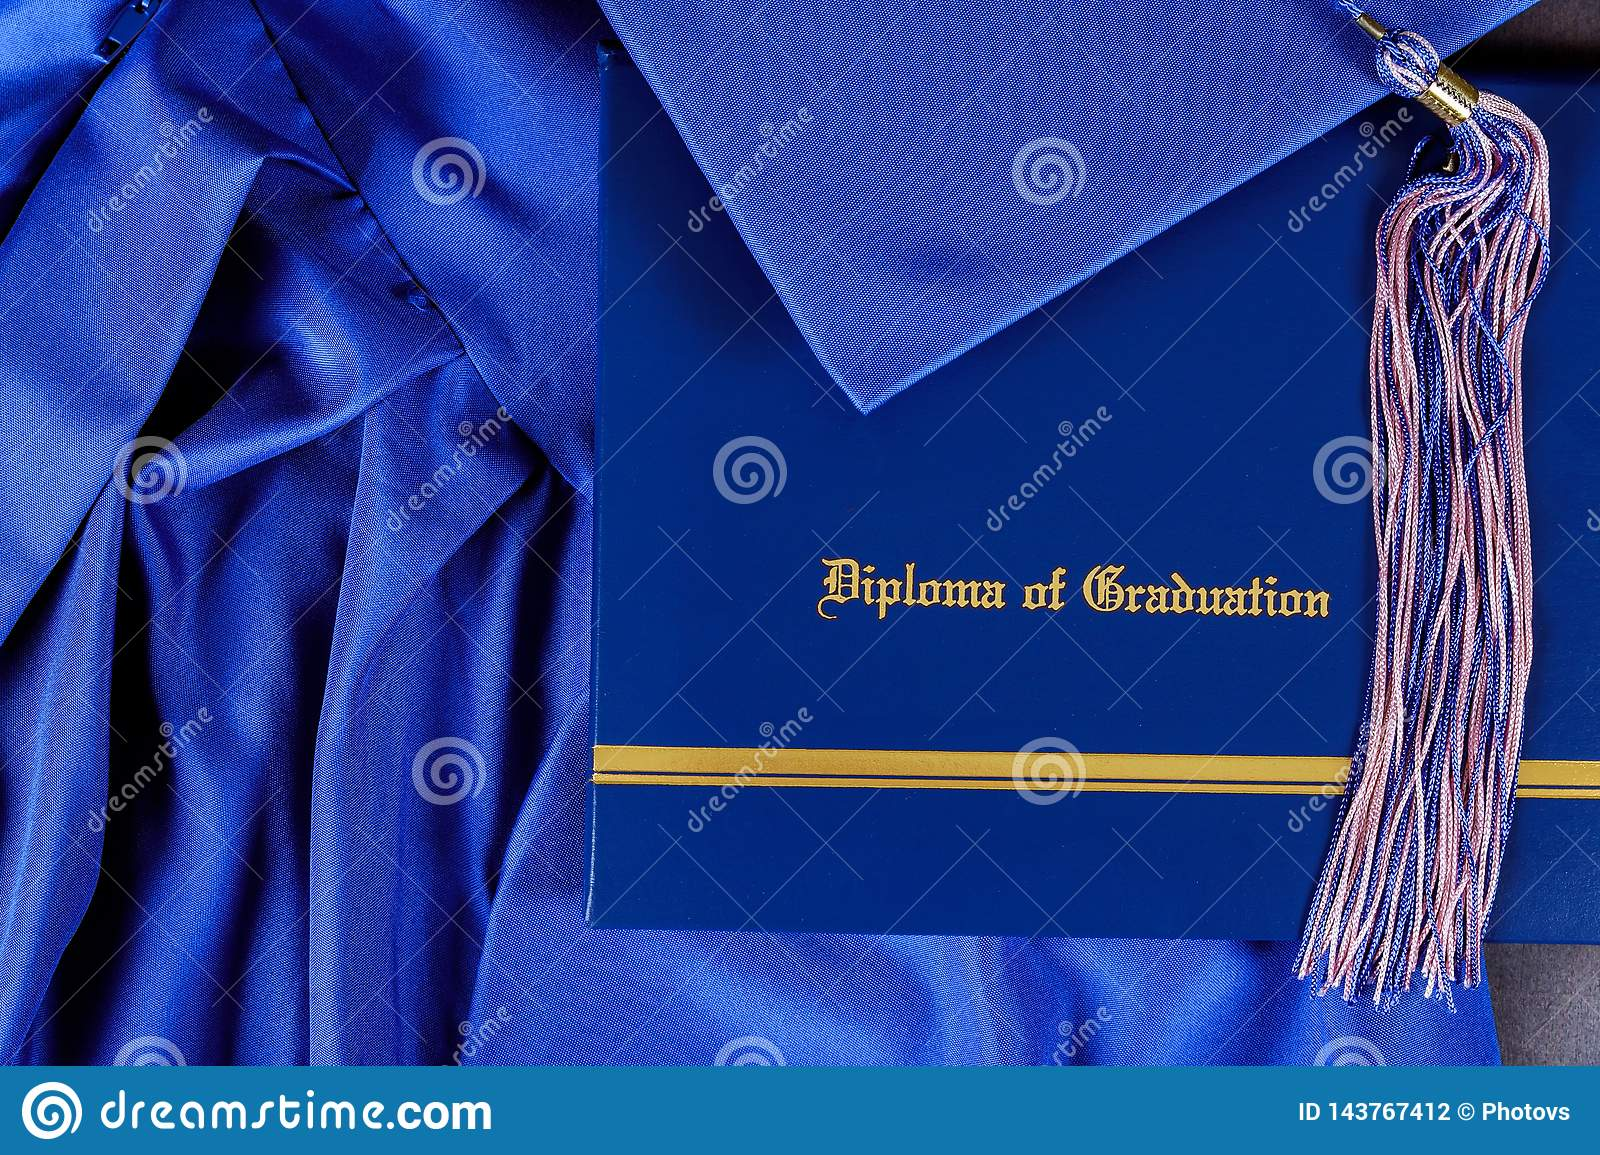 Graduation hat and diploma certificate front view